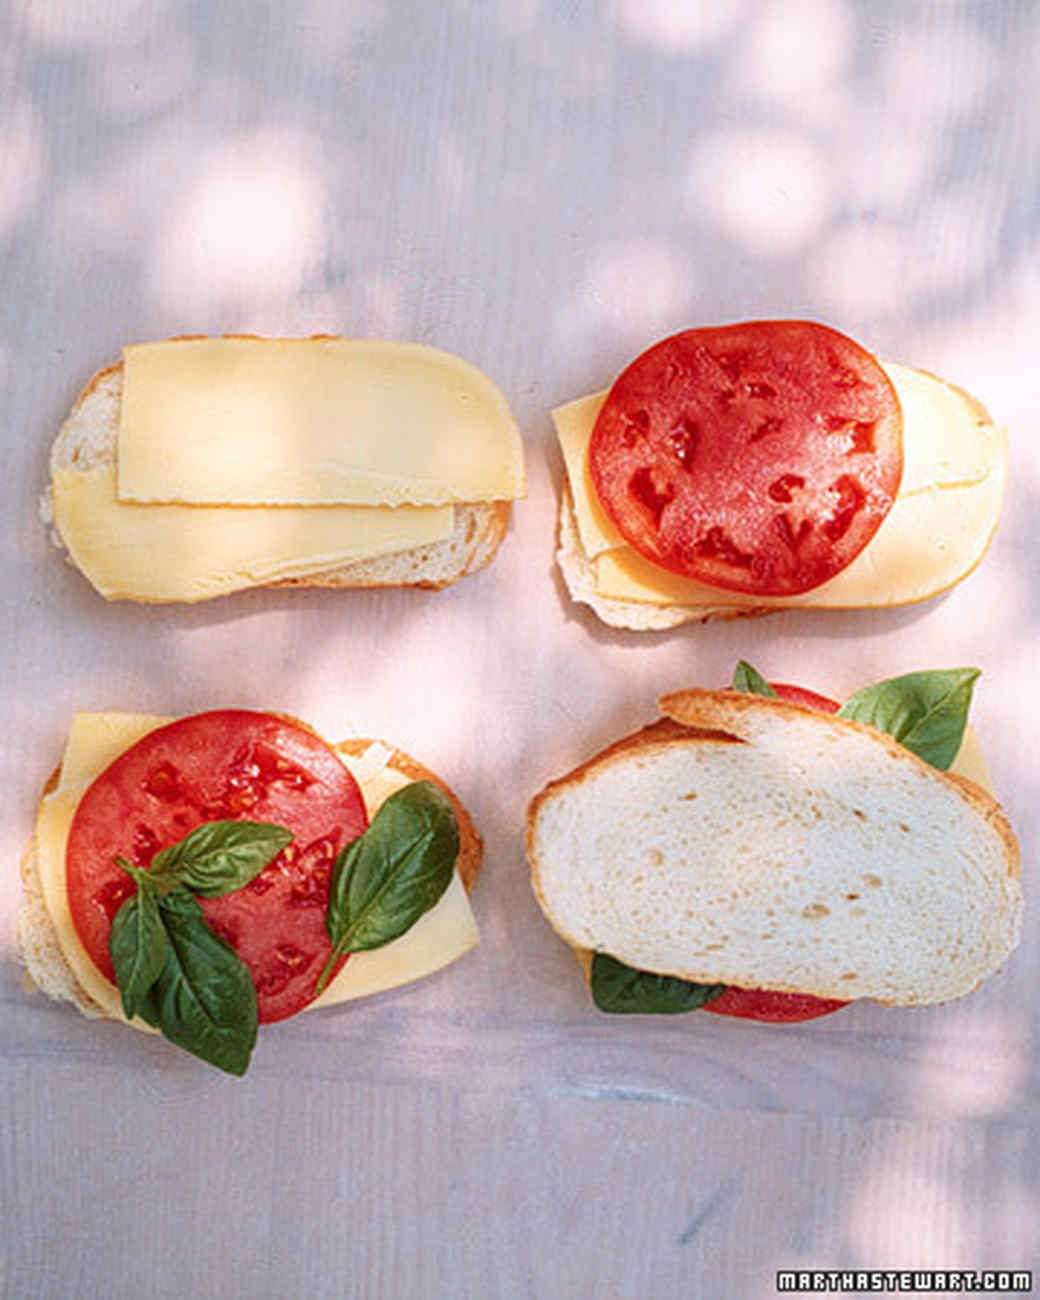 Grilled Cheese with Tomato and Basil